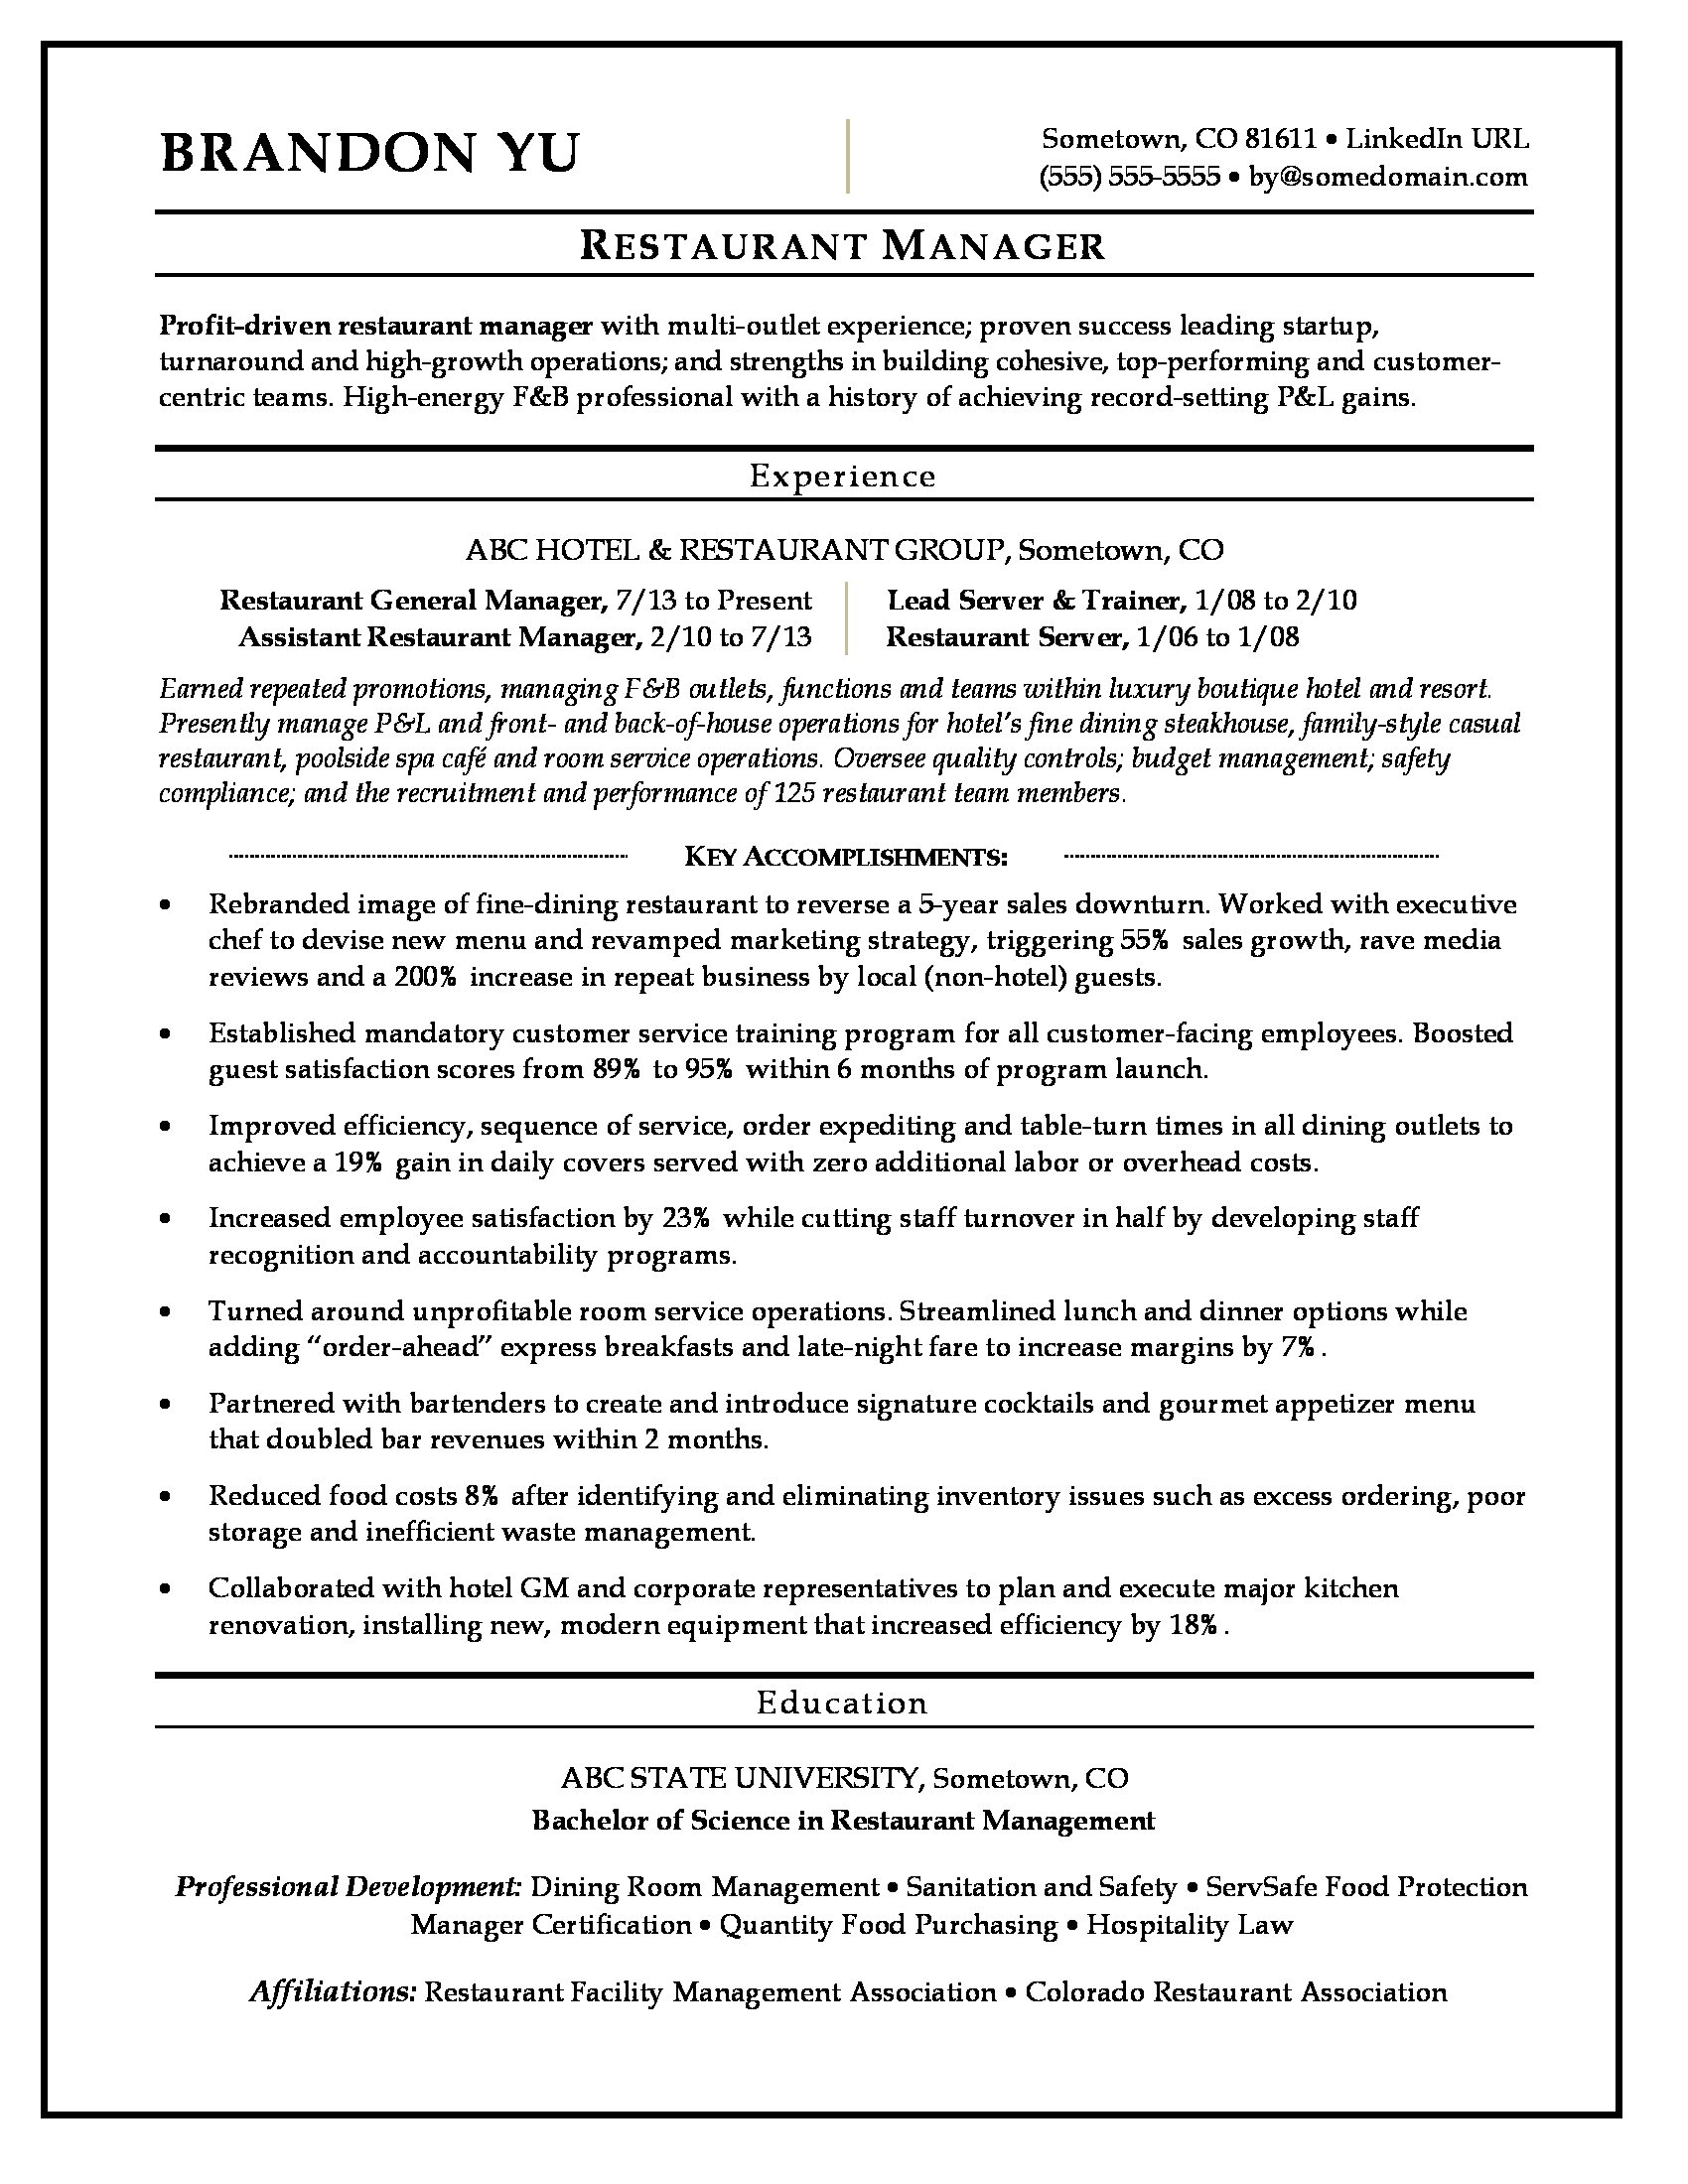 restaurant manager resume sample monster owner for office assistant with experience Resume Restaurant Owner Resume